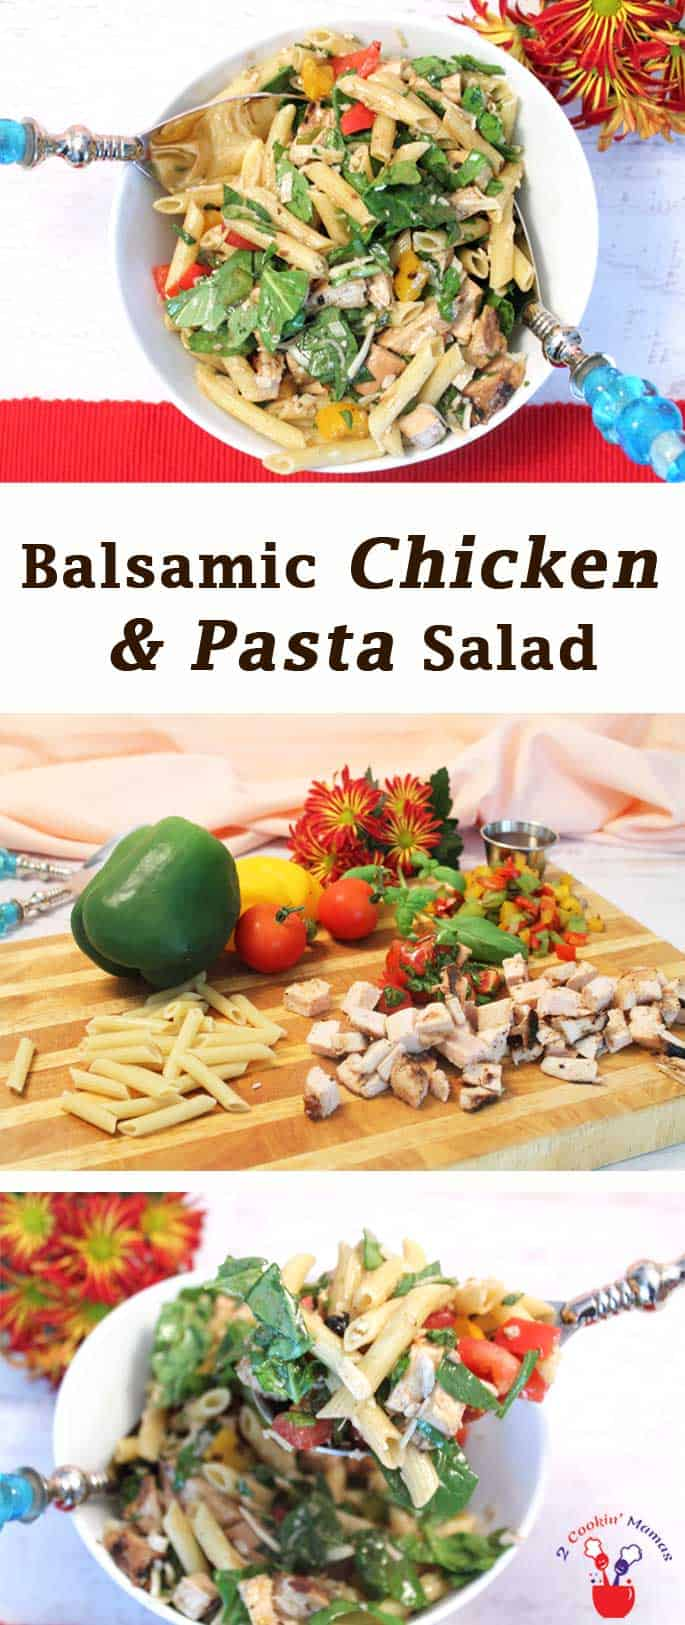 Balsamic Chicken & Pasta Salad | 2 Cookin Mamas Want a delicious & healthy salad for your next picnic? This balsamic chicken & pasta salad is easy to carry with you & stretches to accommodate a crowd.